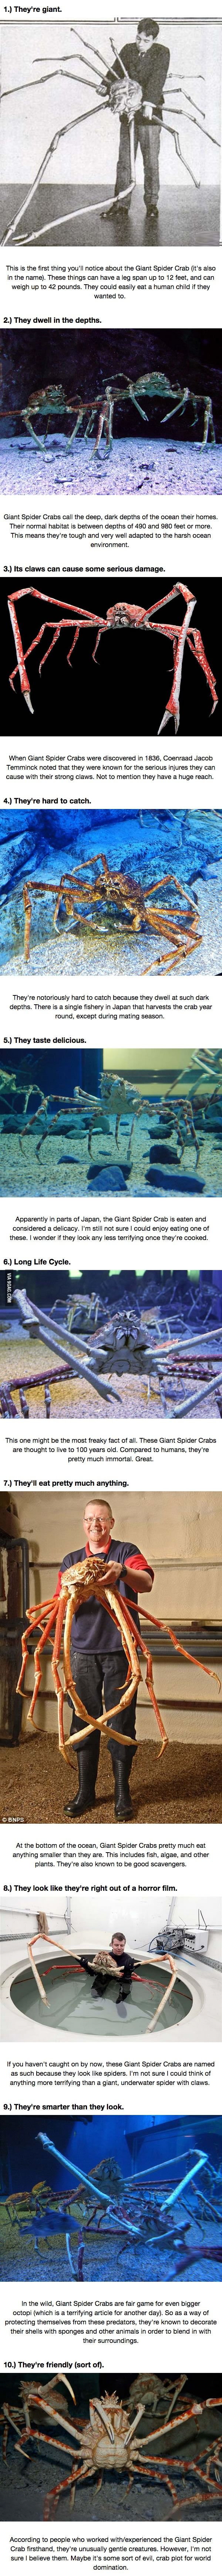 10 Reasons Why The Giant Spider Crab Is The Crustacean Of Your Nightmares.